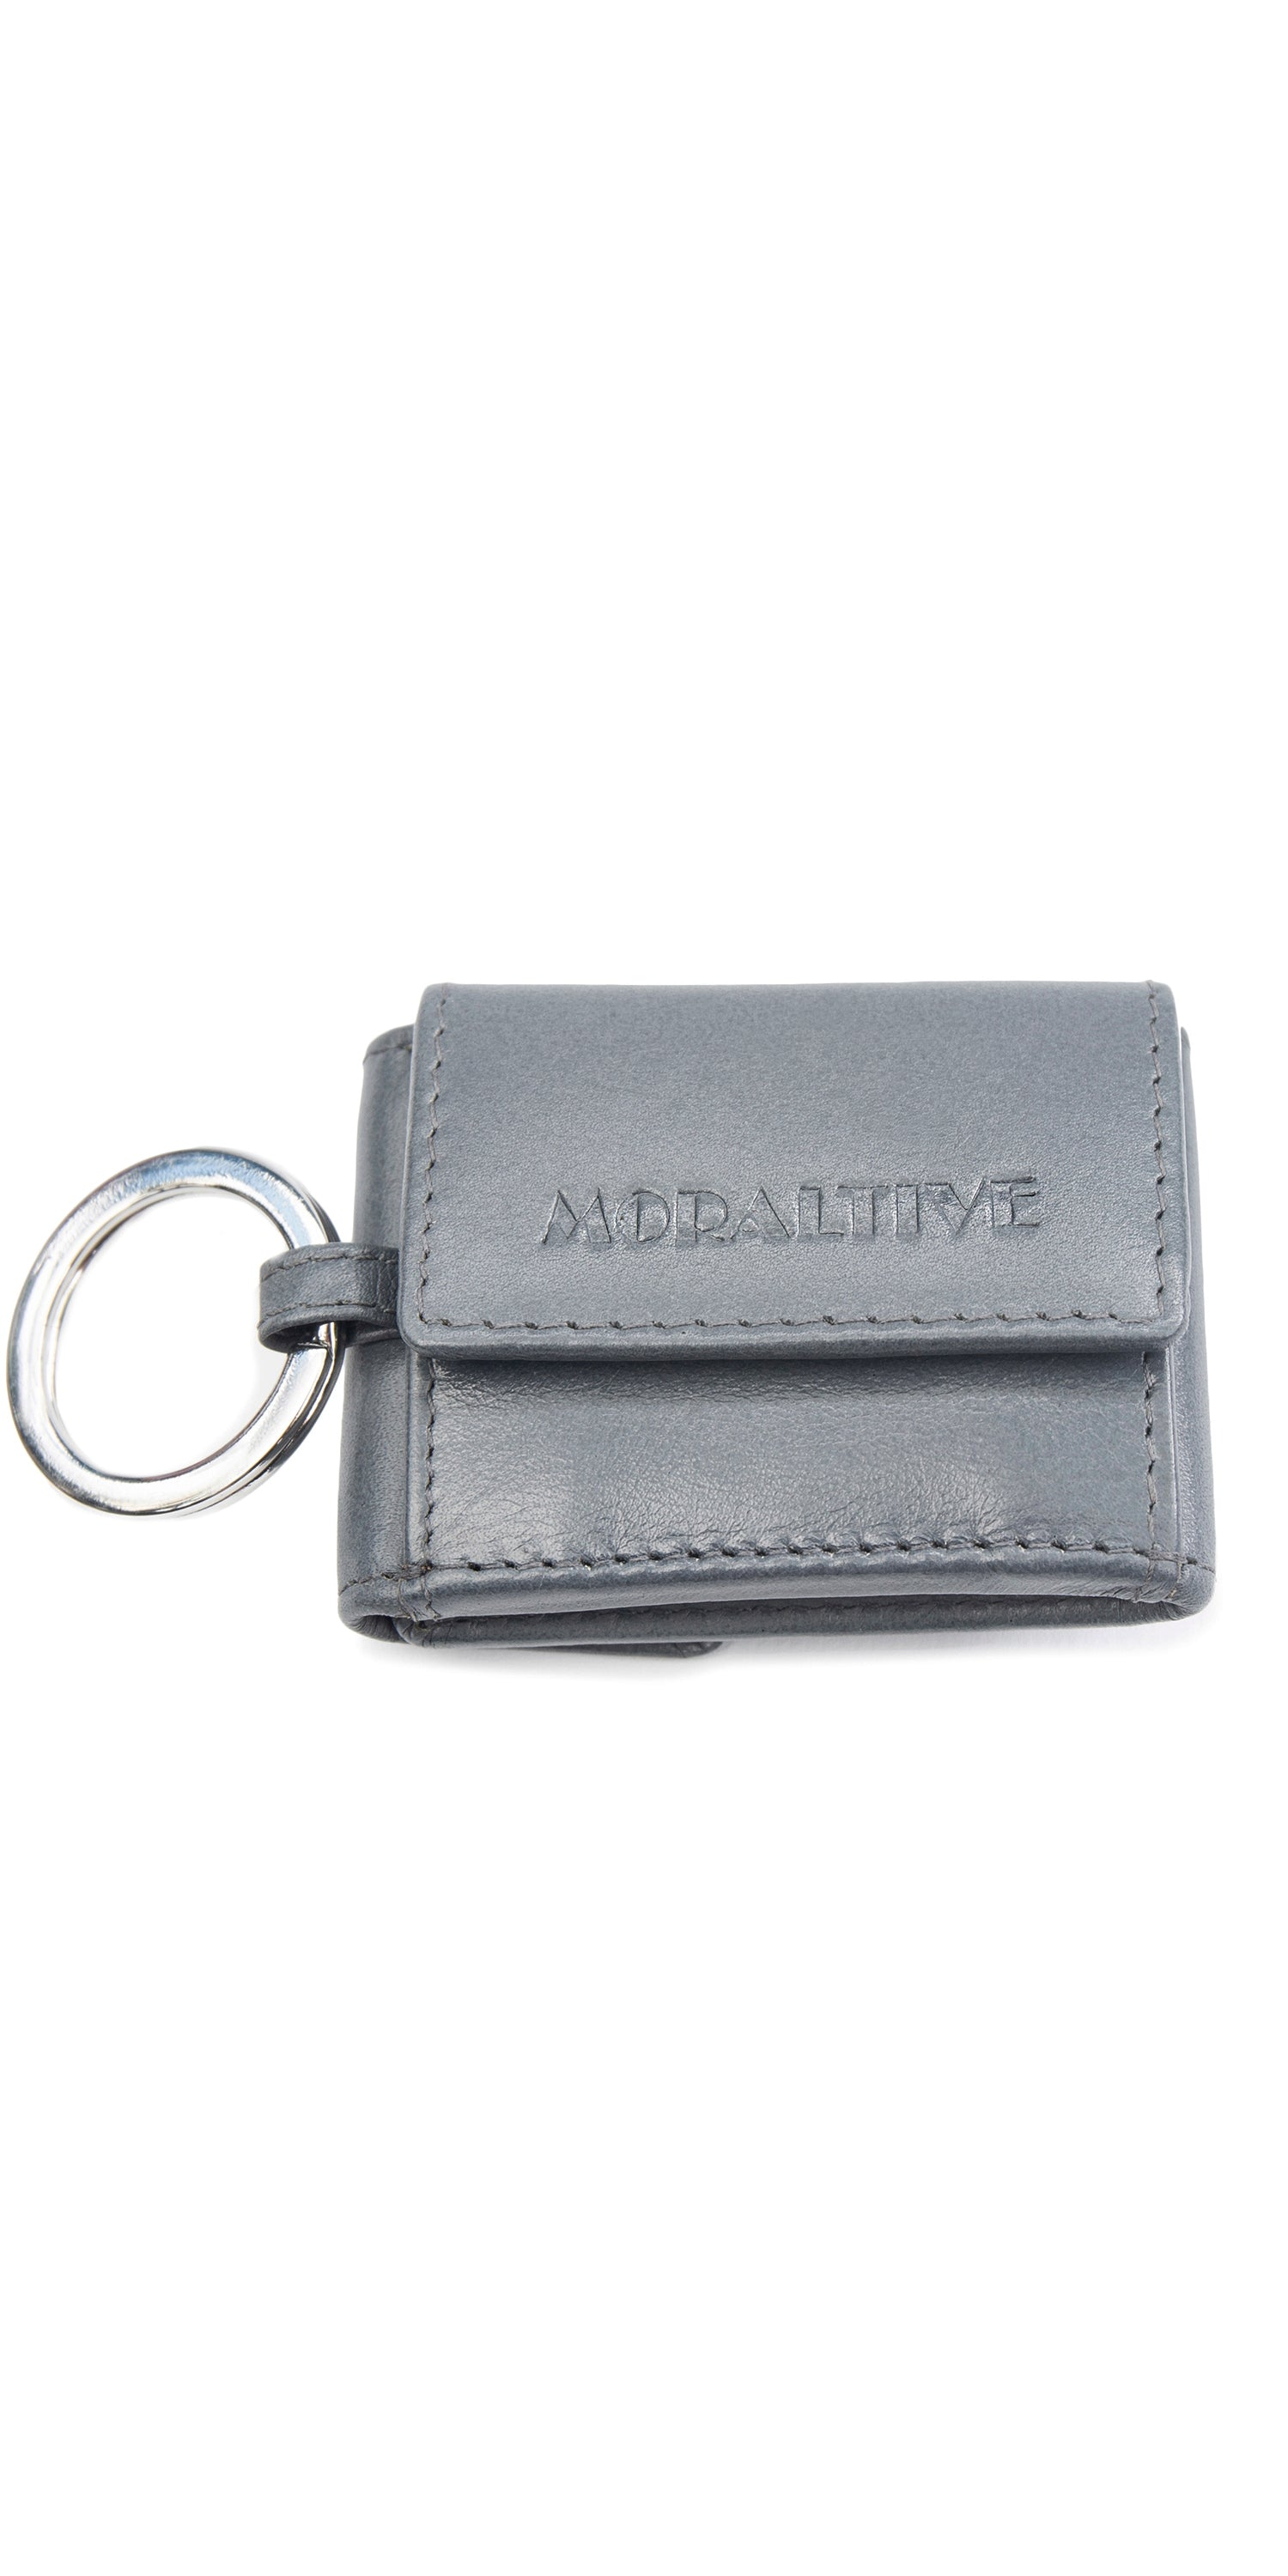 Moraltive Keyring with Purse Grey